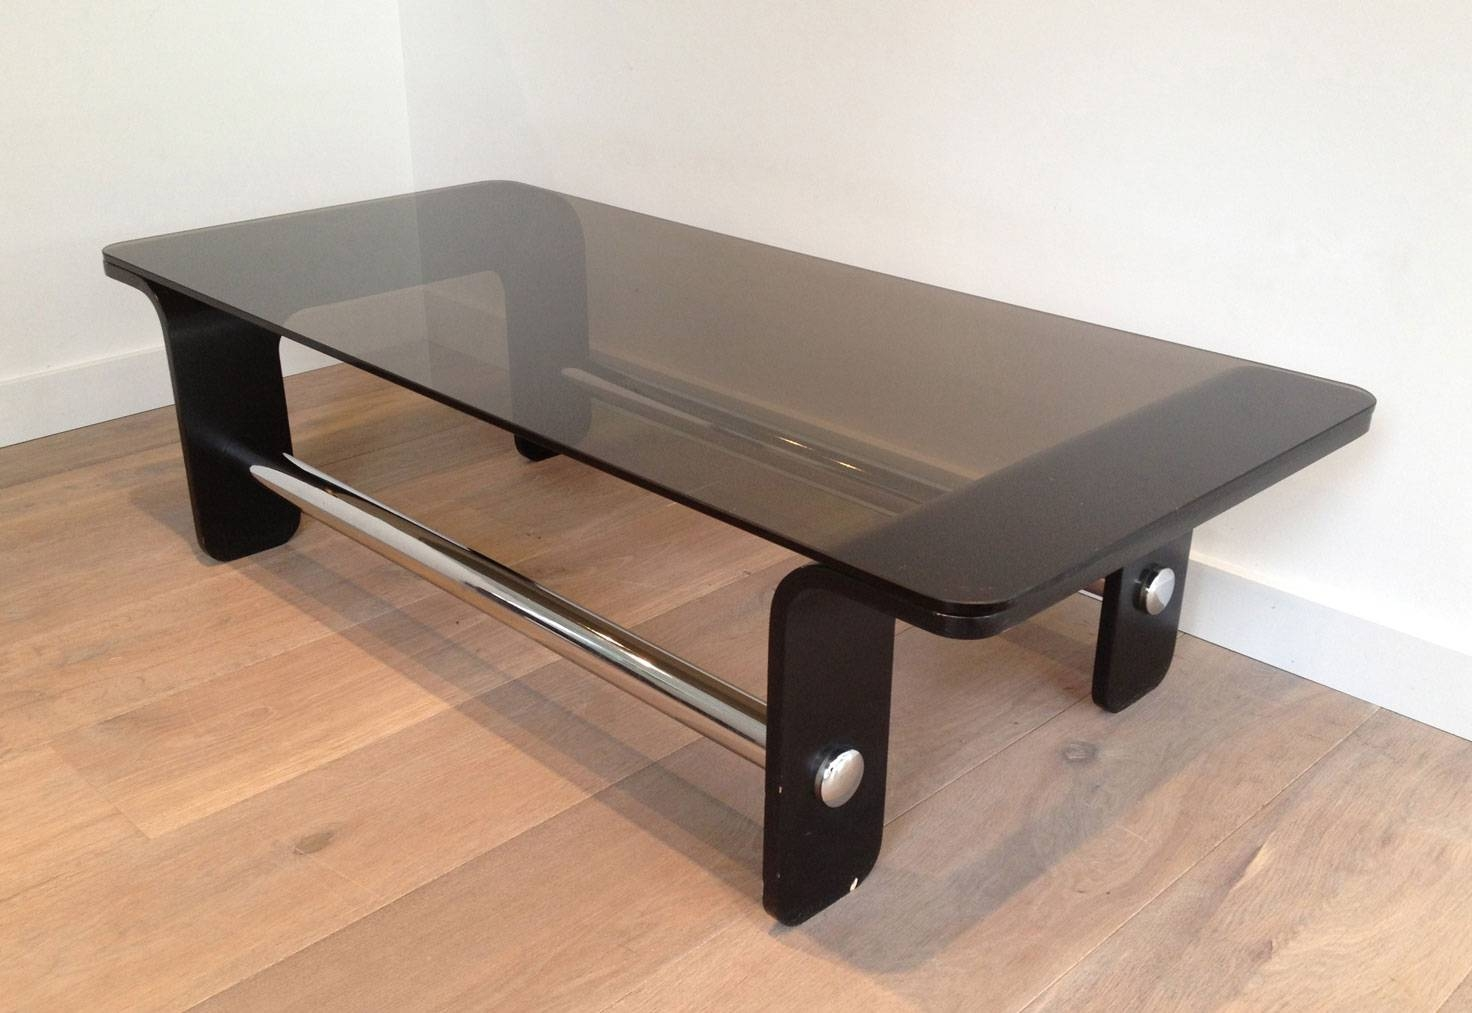 Mid Century Coffee Table In Black Wood, Chrome And Smoked Glass inside Chrome and Wood Coffee Tables (Image 19 of 30)